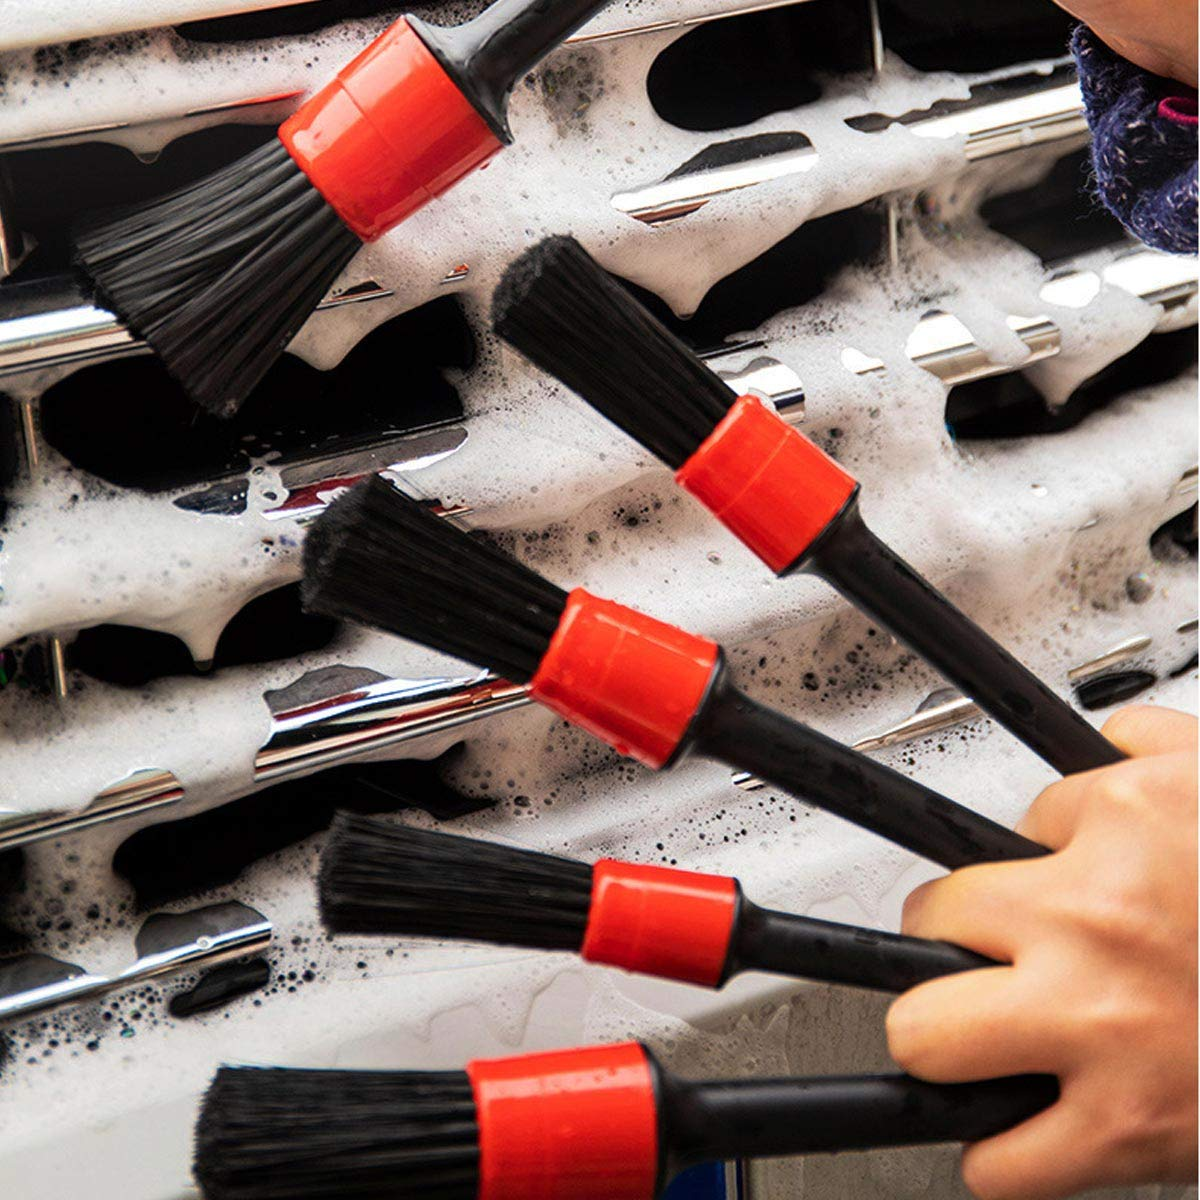 Interior Exterior Ytesky Auto Car Multi-functional Detailing Brush Set for Car Beauty Cleaning Gap Brush,Cleaning Wheels Air Vents,etc,Pack of 5 Emblems Trim Interior Dash